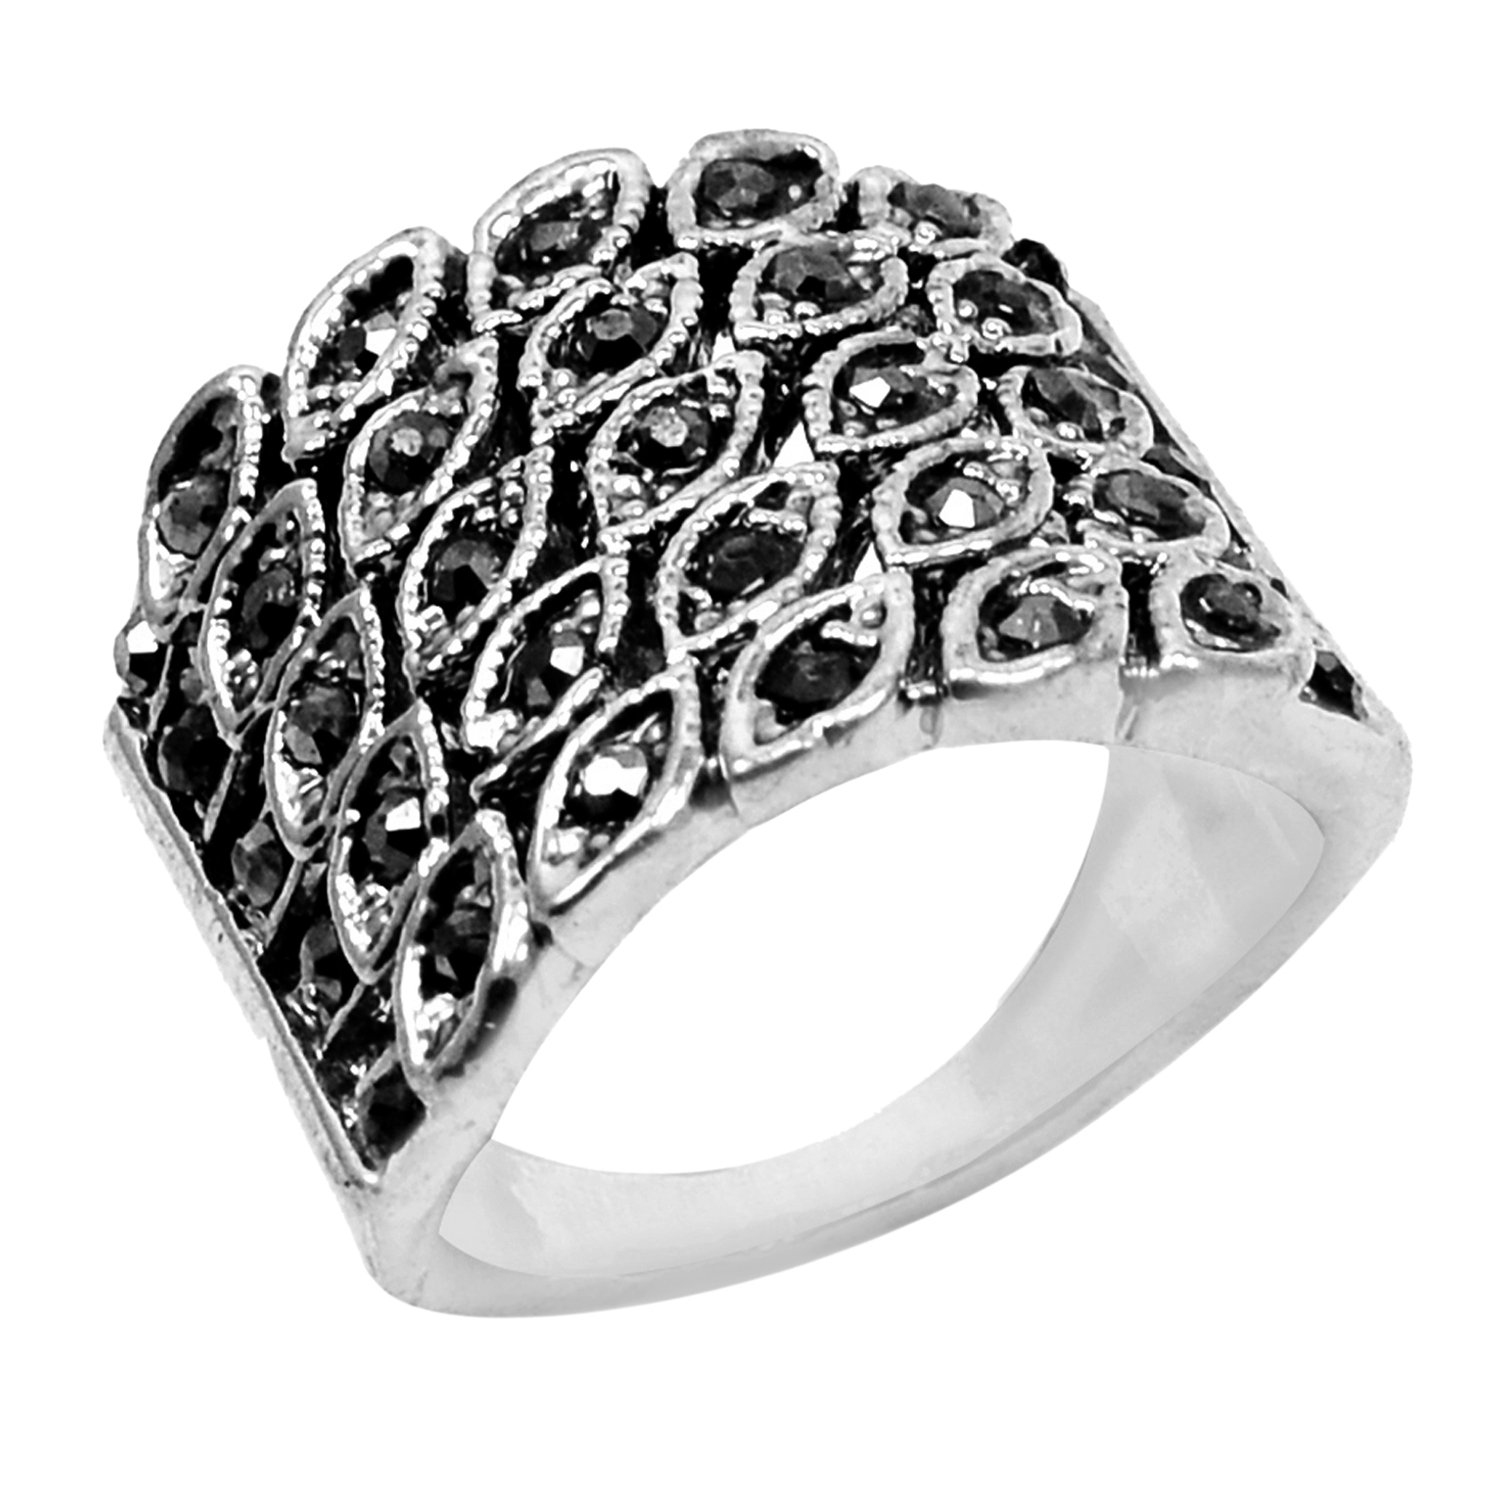 Silvestoo Jaipur Marcasite Silver Plated Ring Jewelry